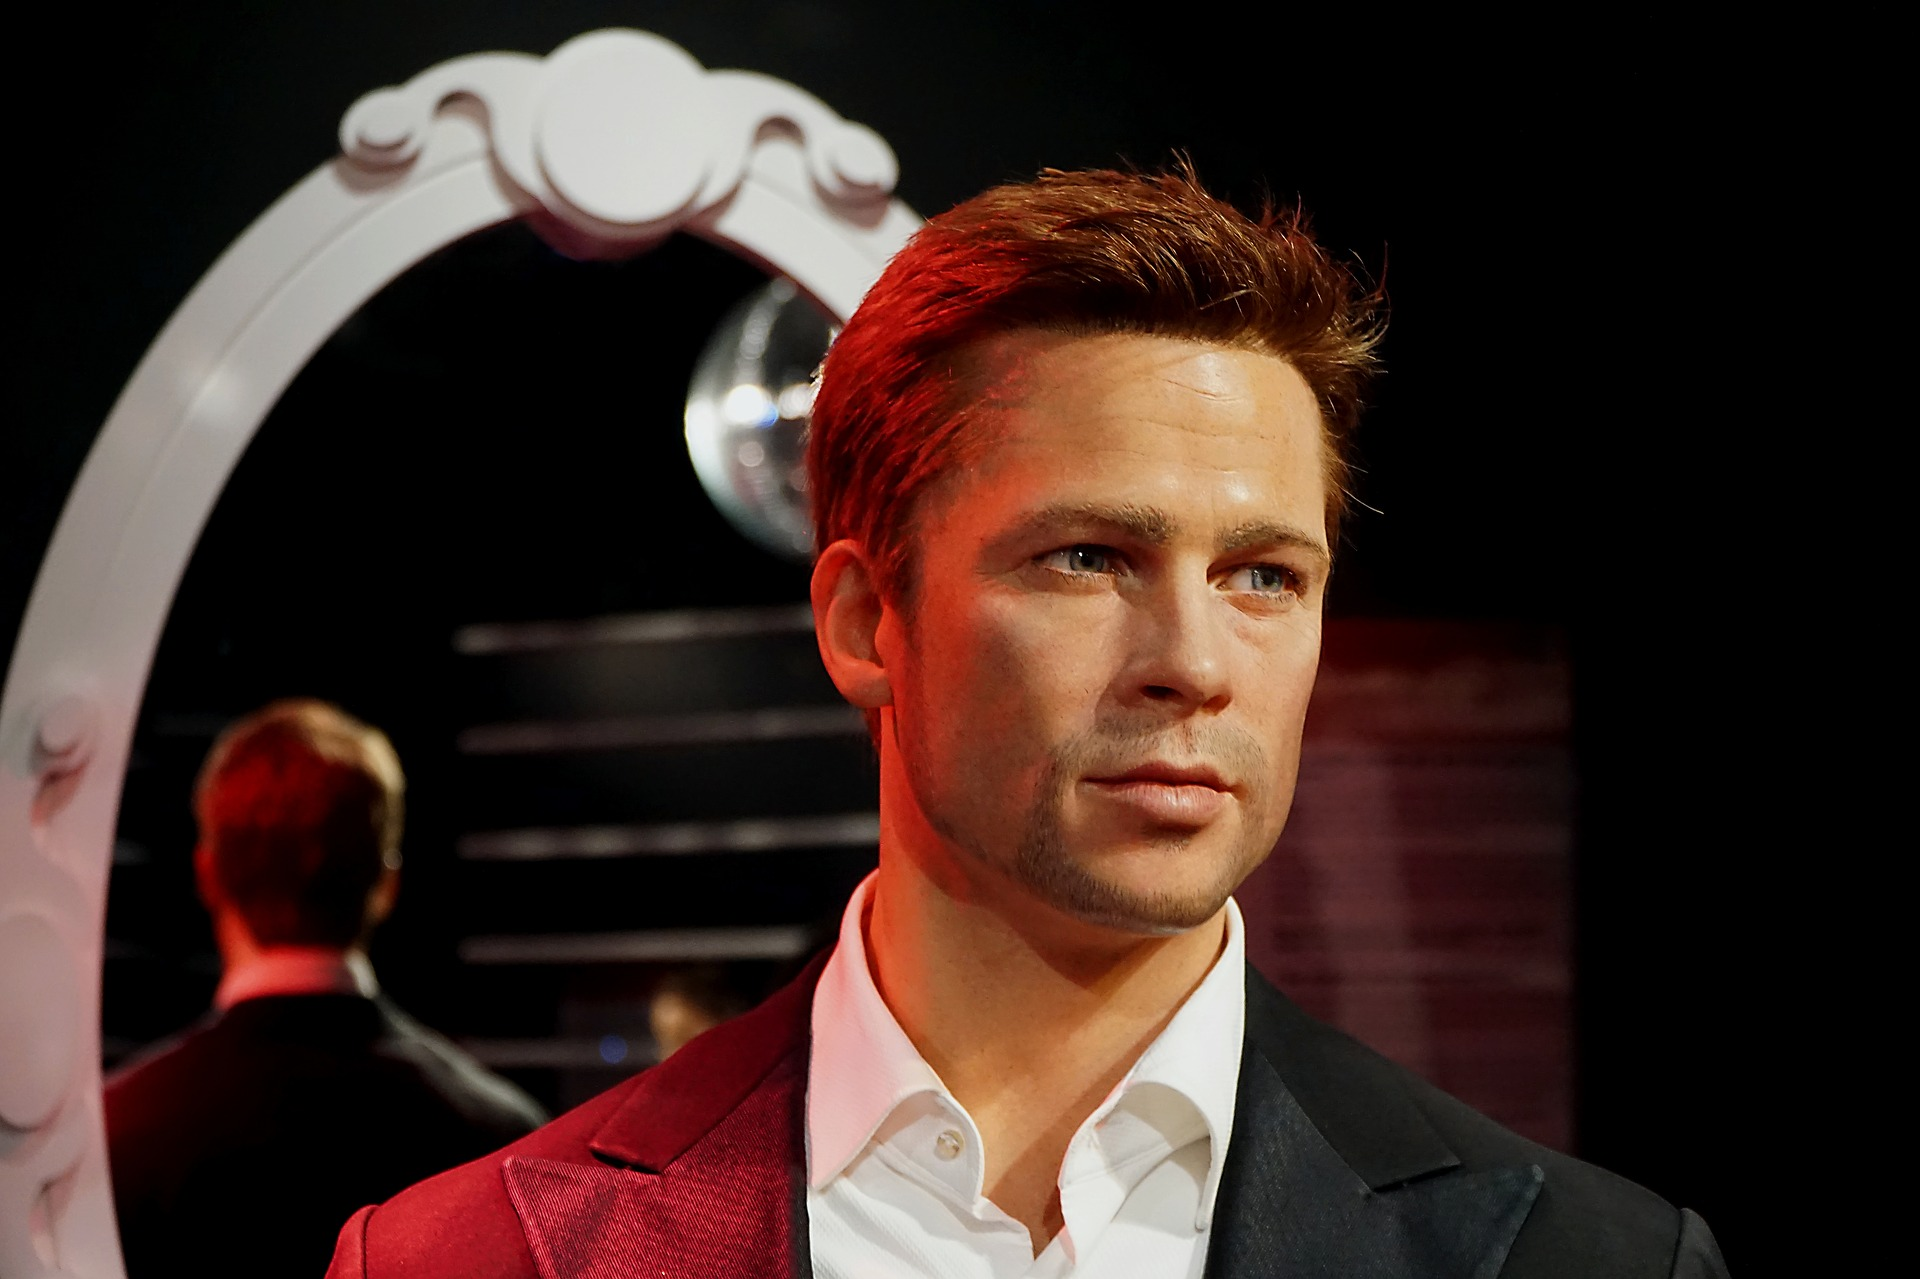 How Tall Is Brad Pitt? What Are the Speculations About His Height?